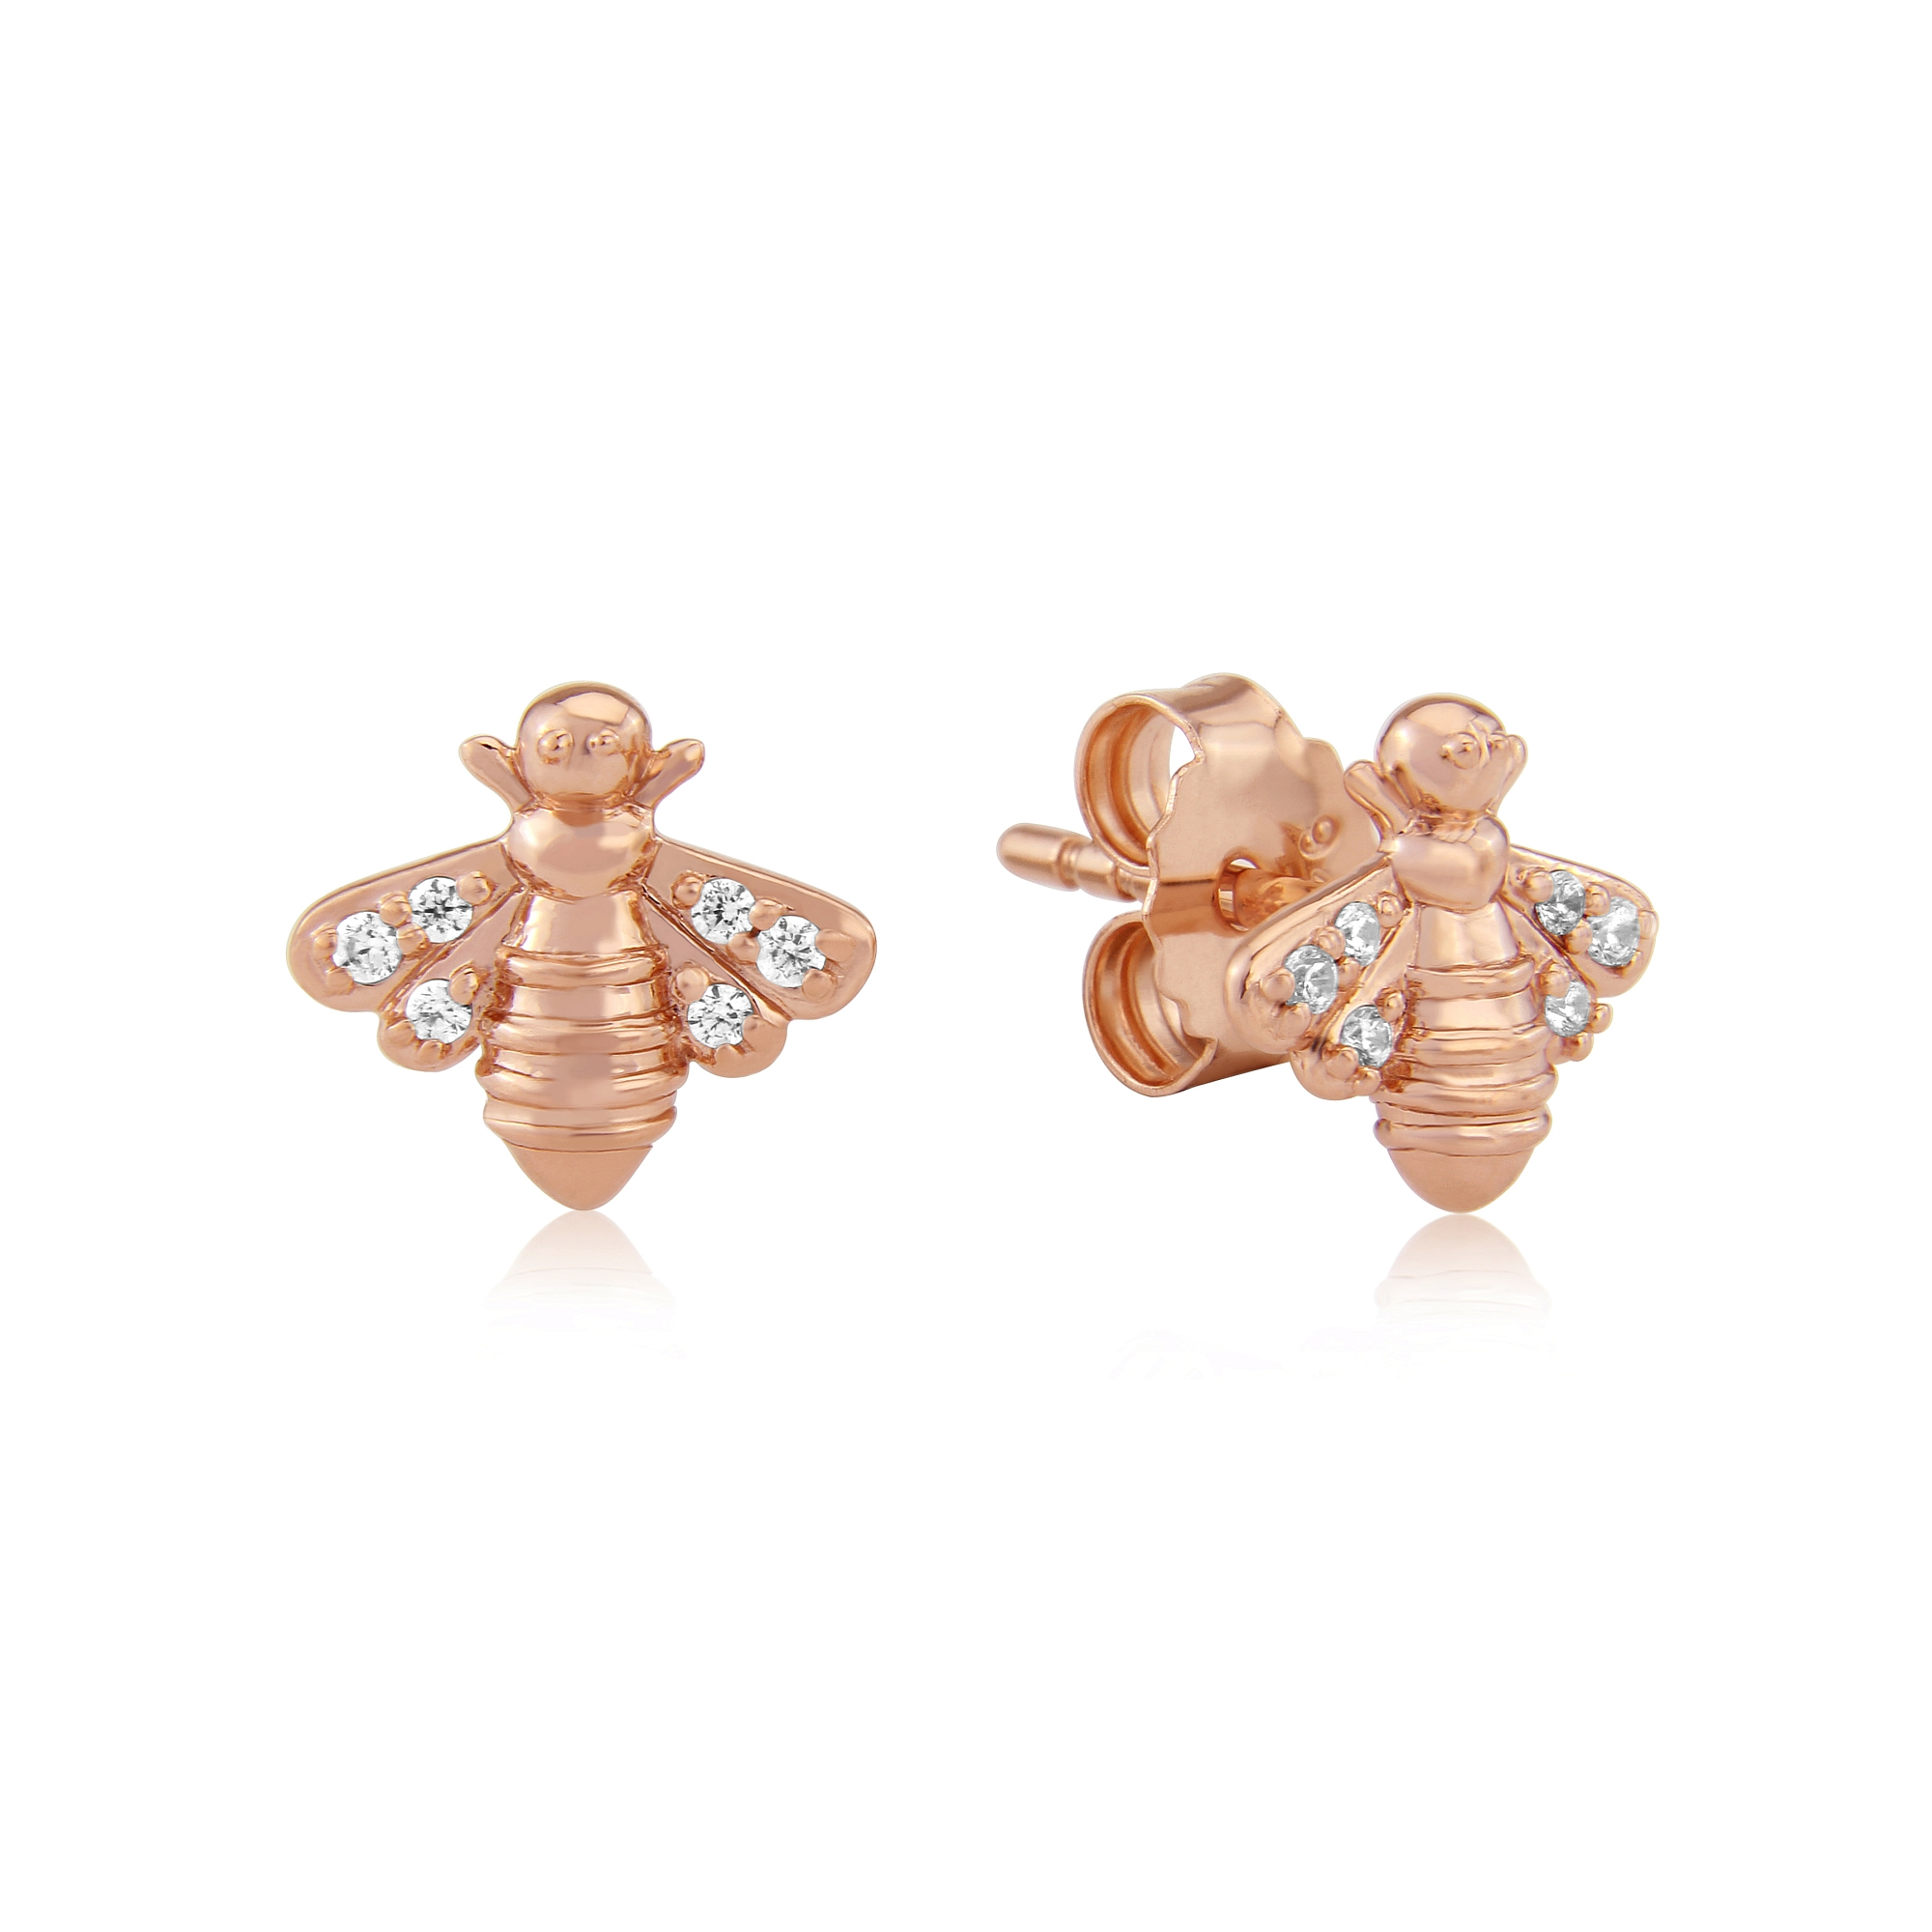 mutrend bee stud earring shop personal bill lab styling earing hexagon skinner